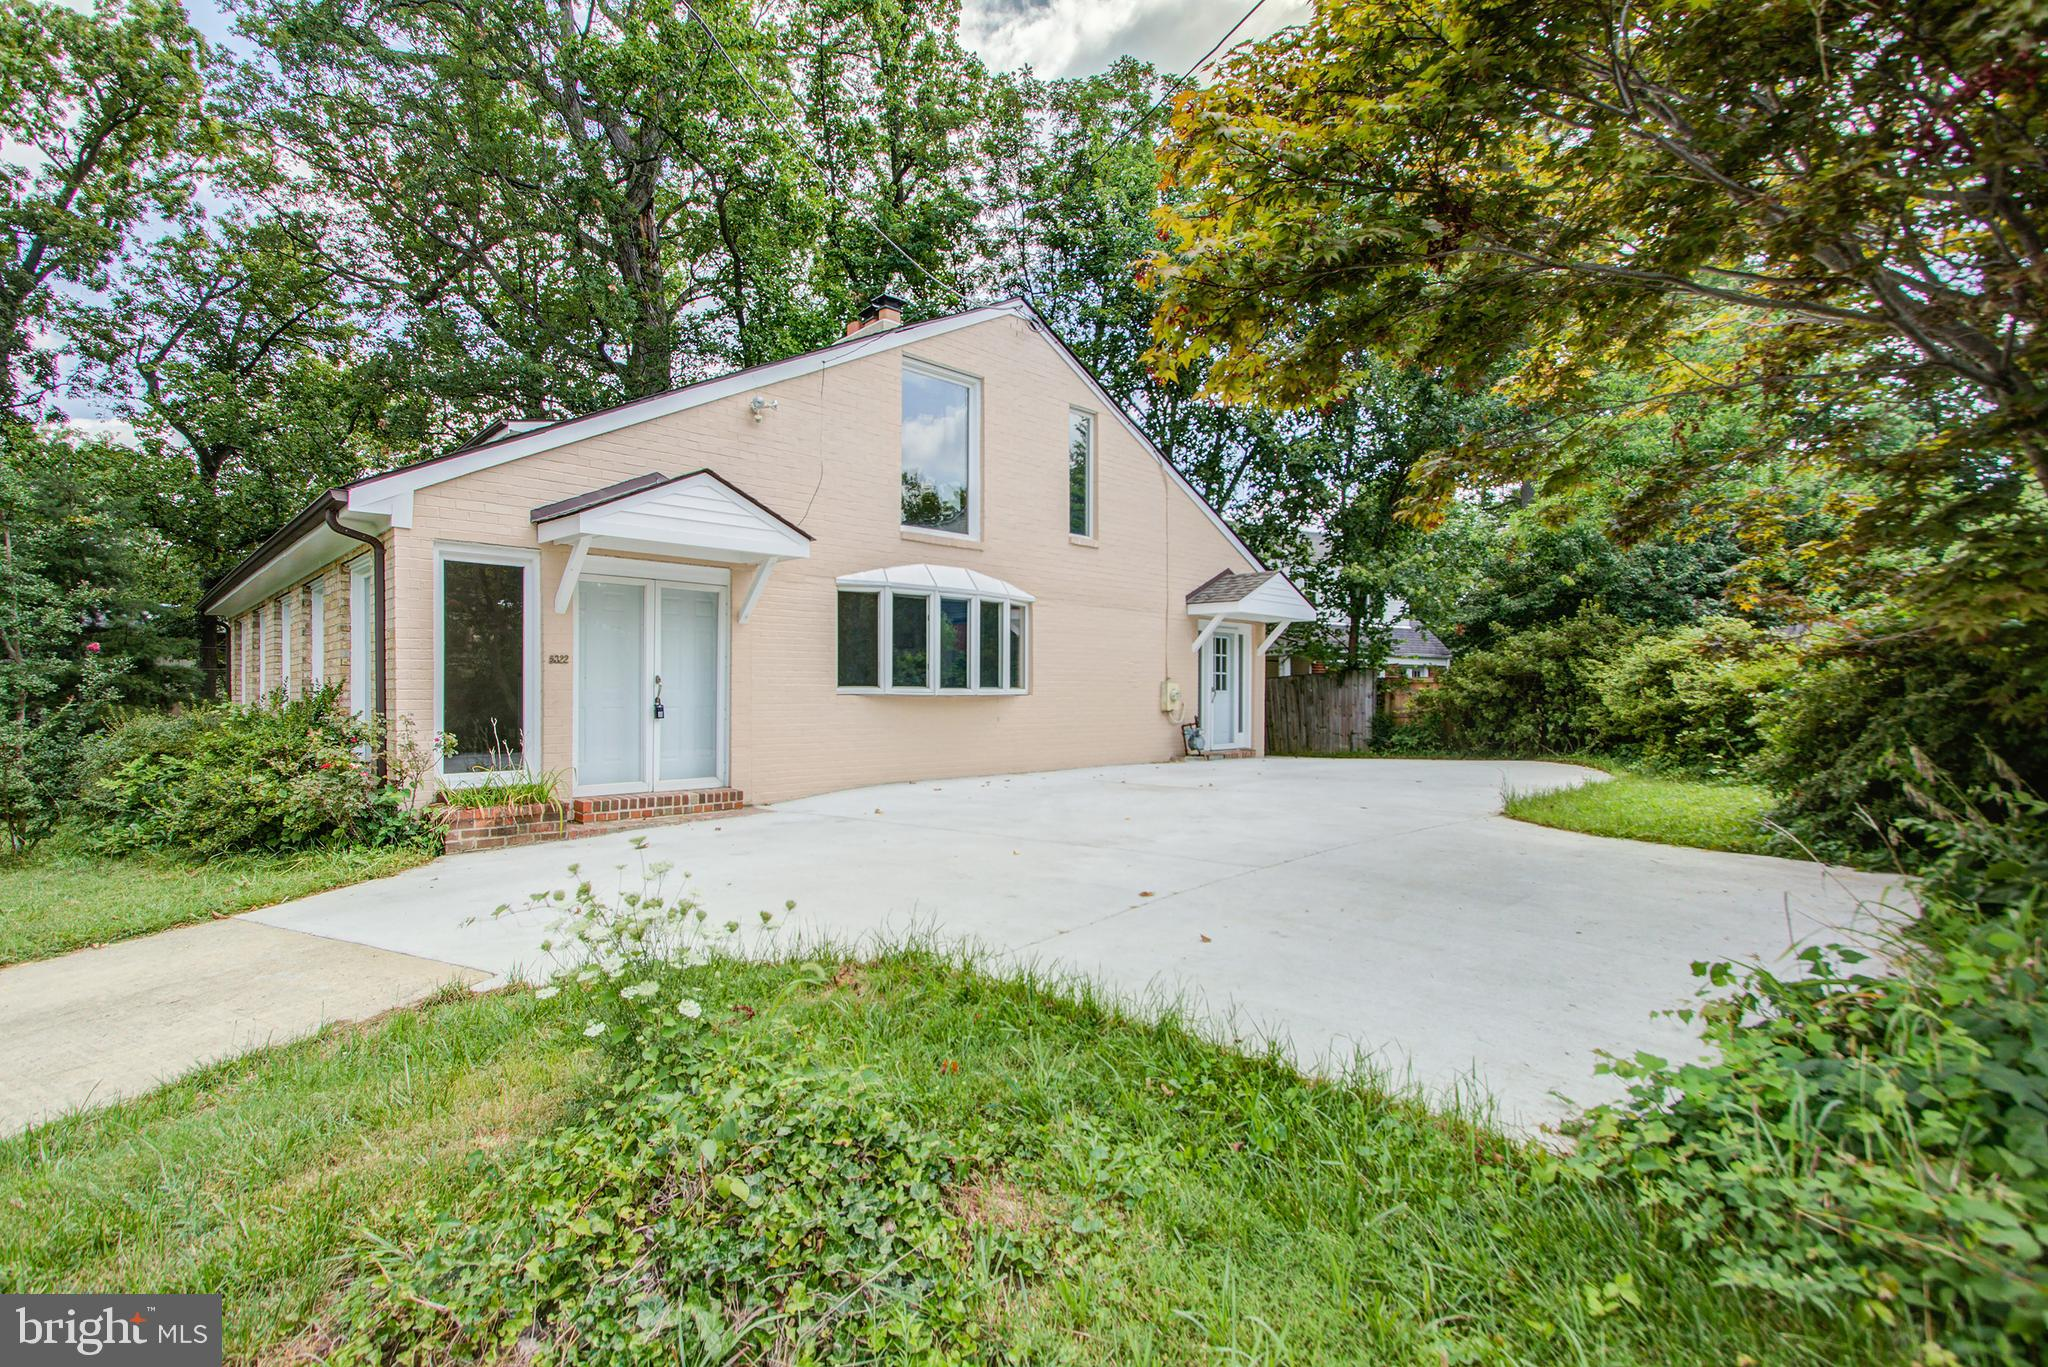 4 BR, 3.5 BA all Brick home with a double master upstairs and lower-level bedroom(s) or office space